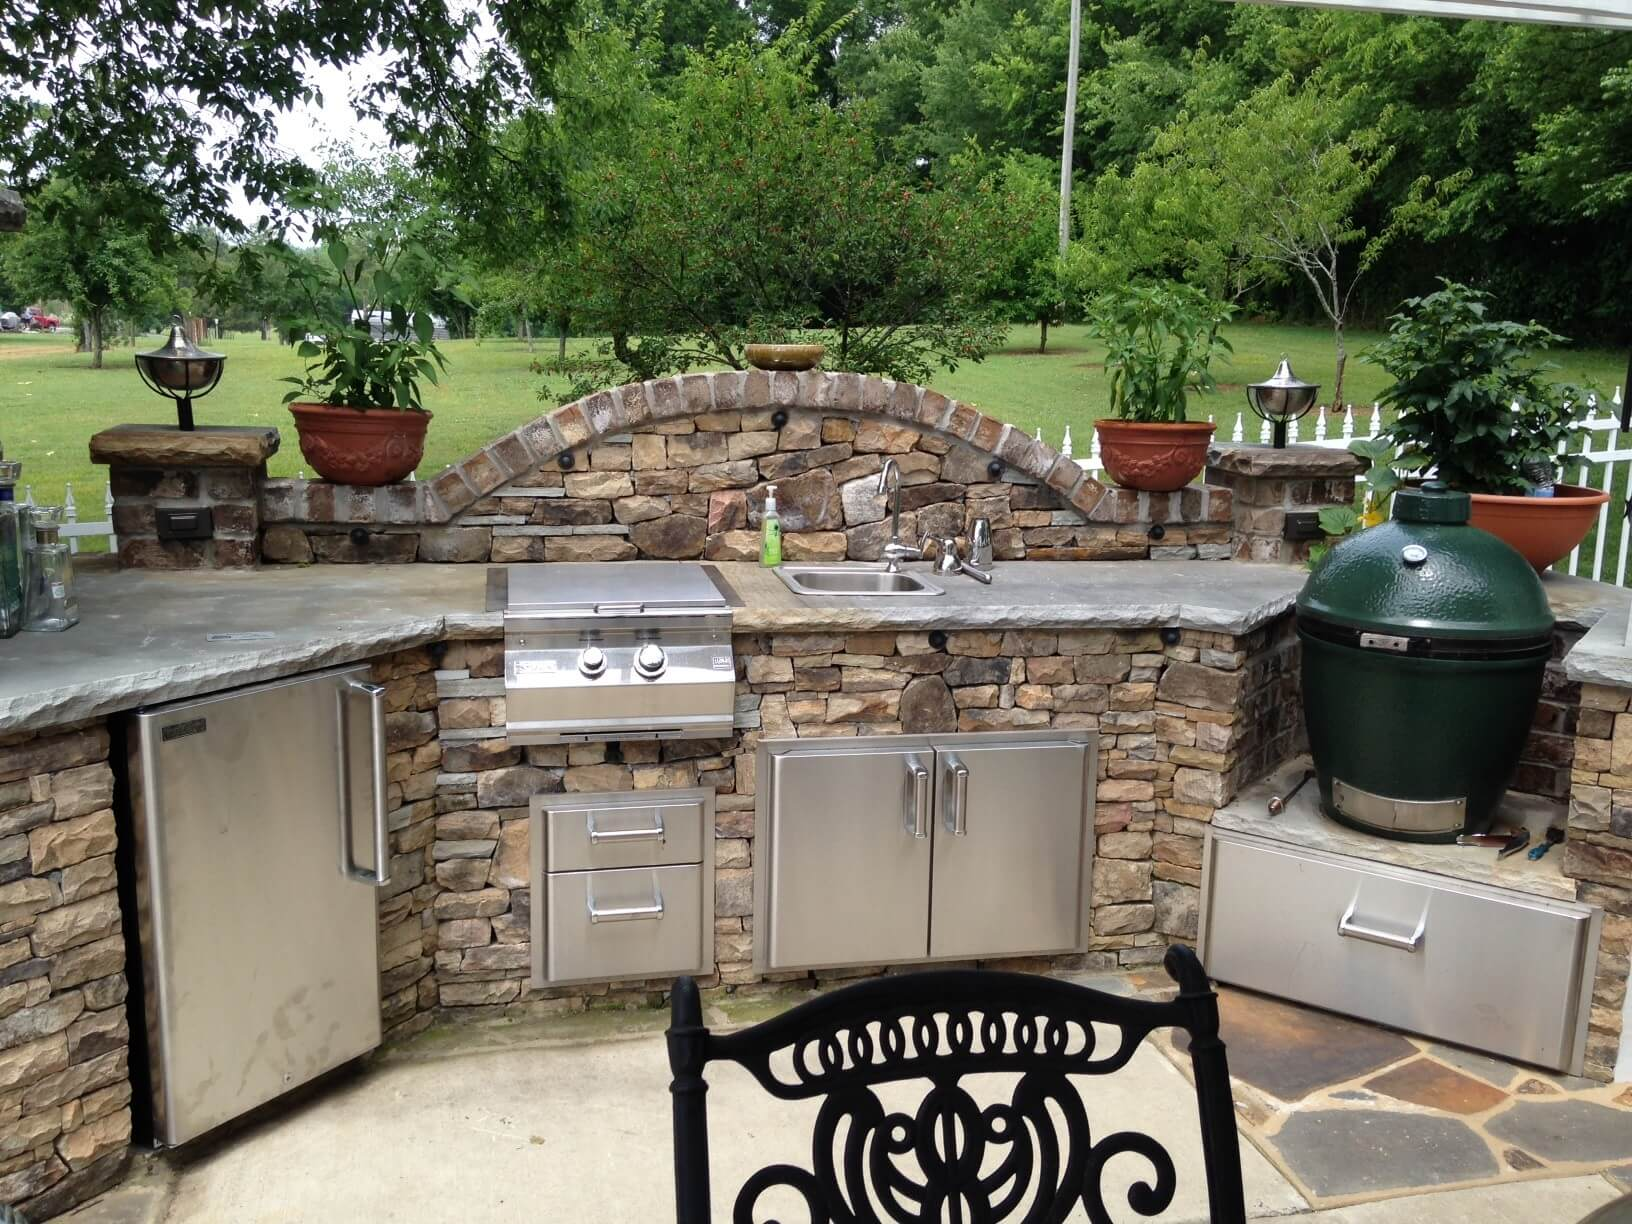 Fancy outdoor kitchen ideas slate and stone outdoor kitchen décor snsnfhm